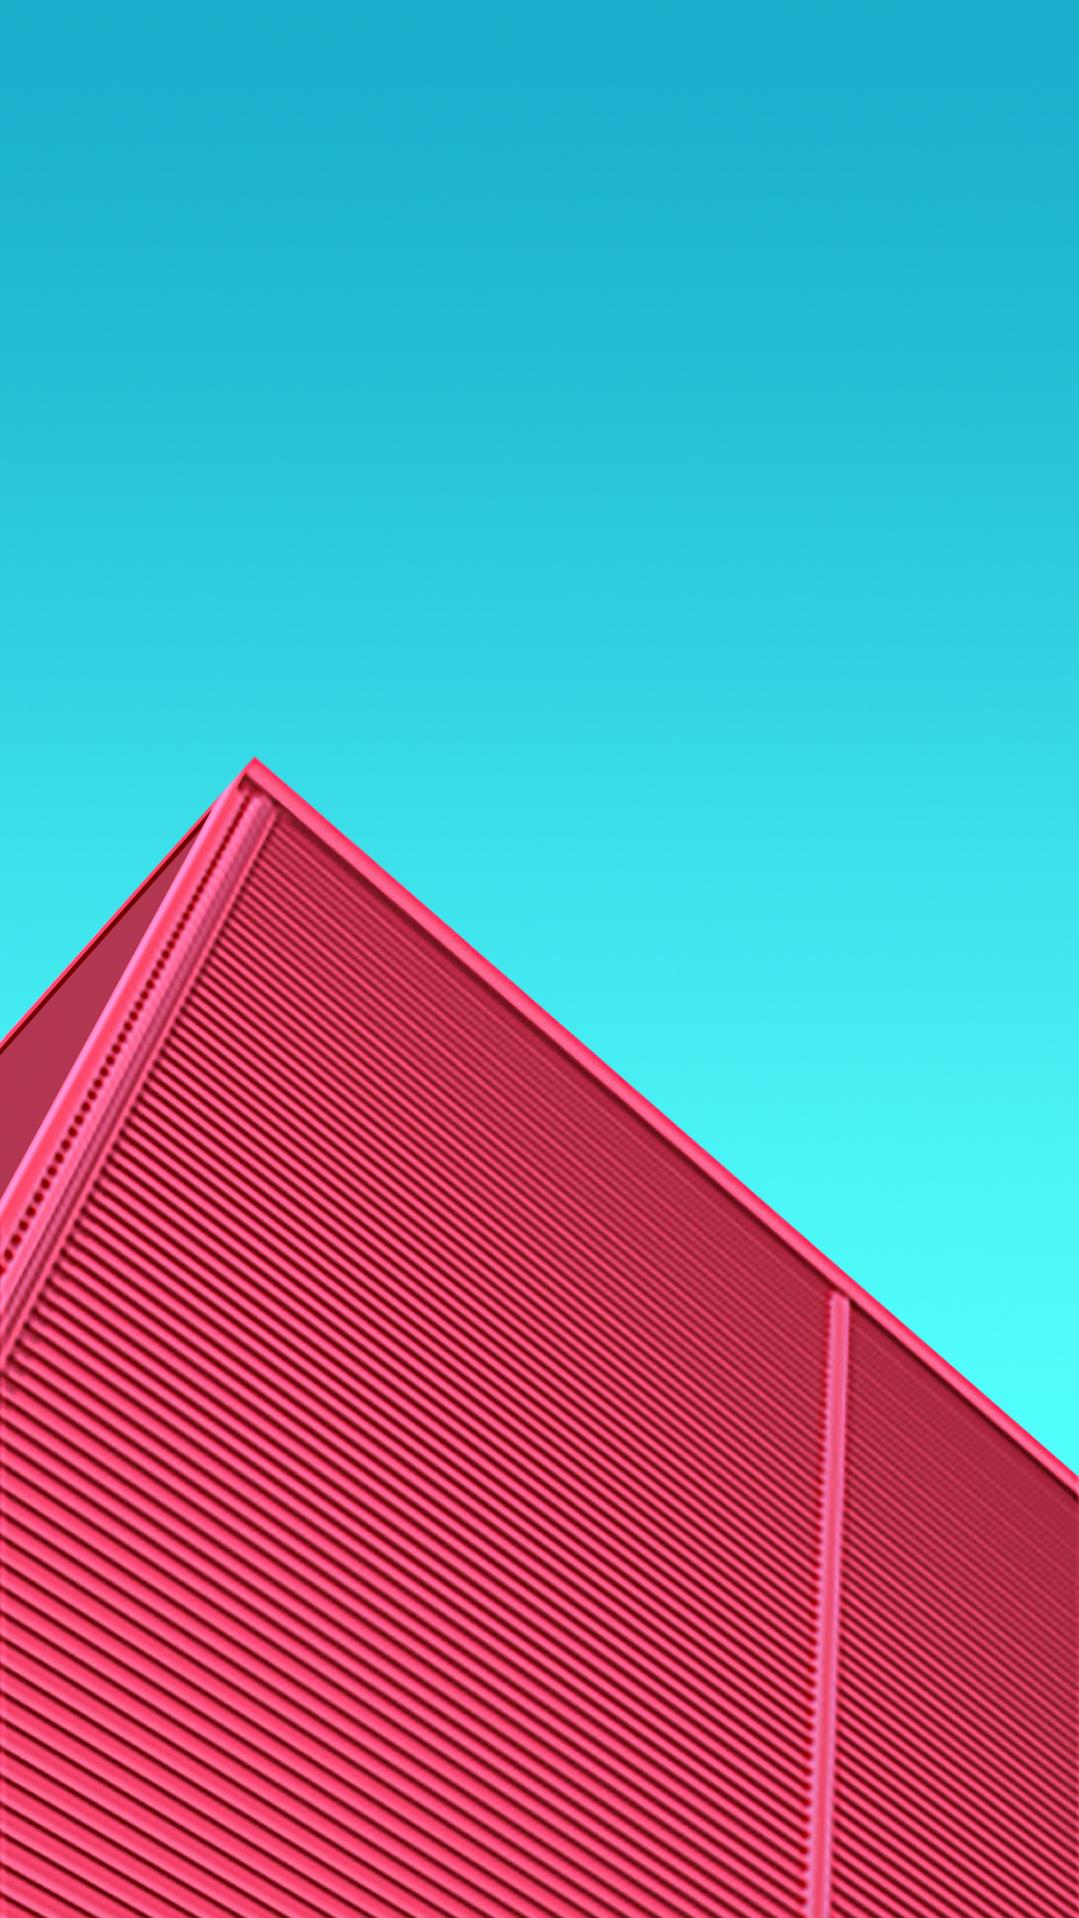 Free Download Material Design Wallpapers Xda Wallppaper